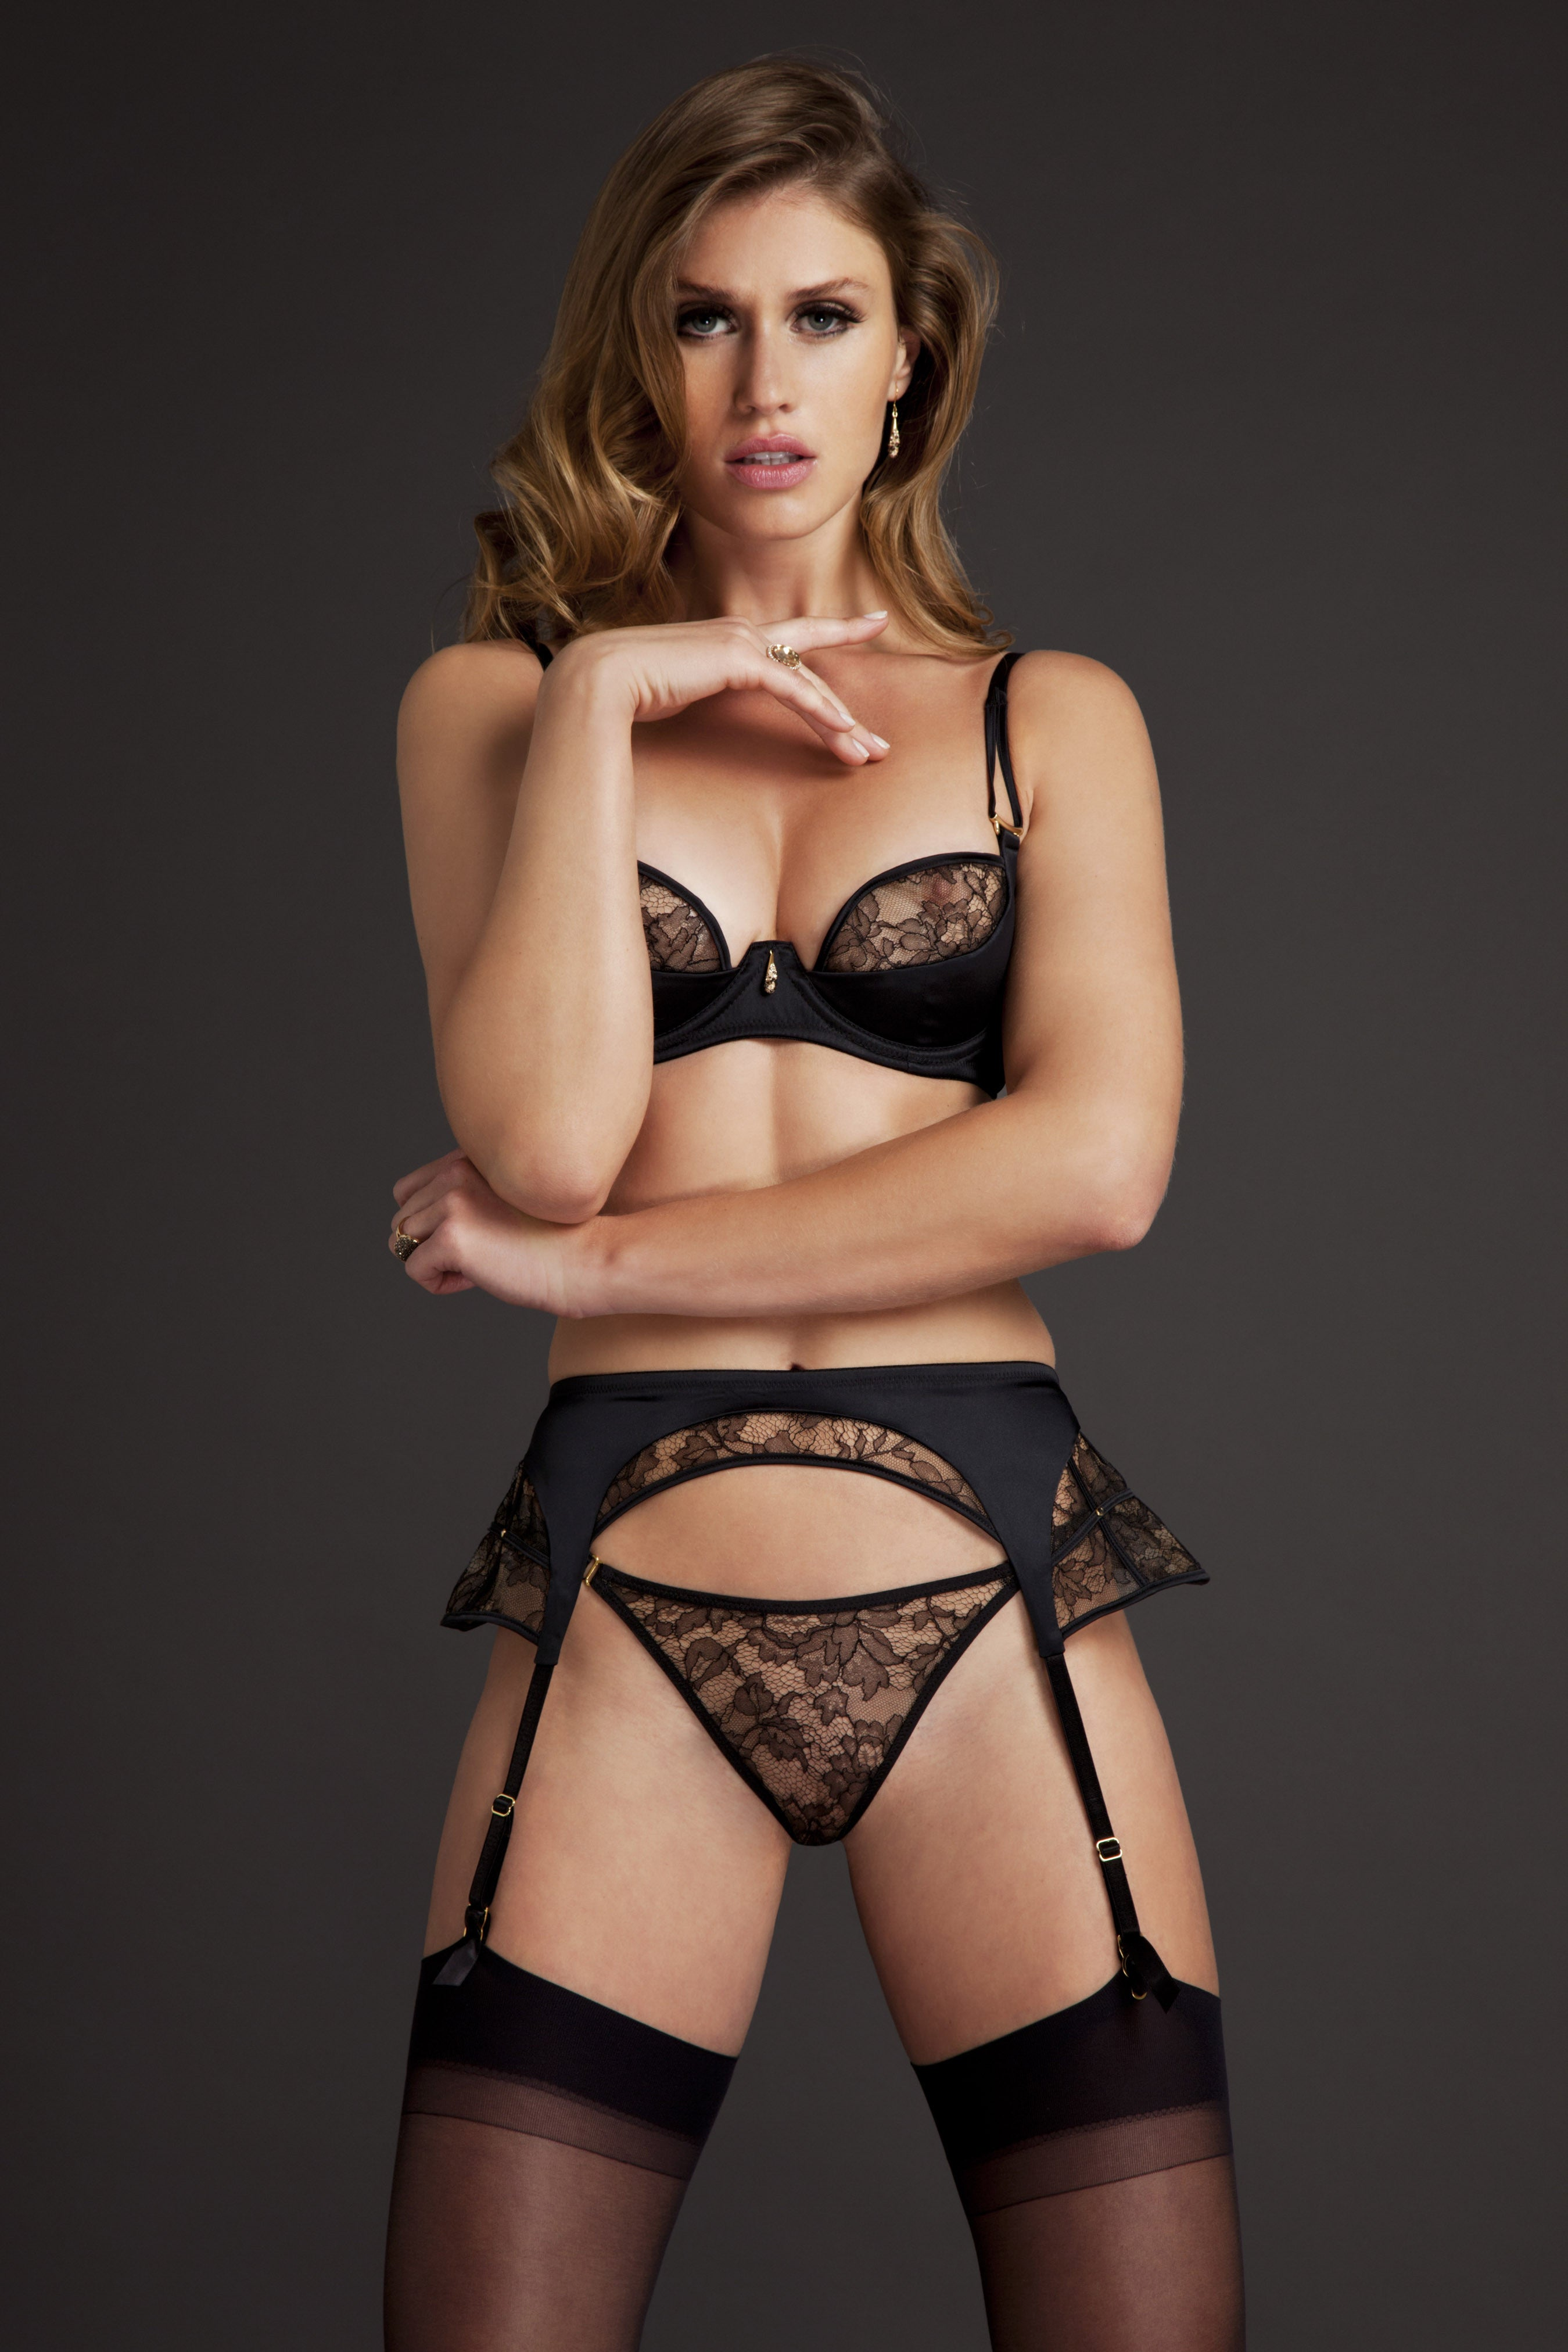 Luxury sheer black erotic lingerie set by Tatu Couture, with Xena Black plunge bra worn with sheer lace thong and suspender belt